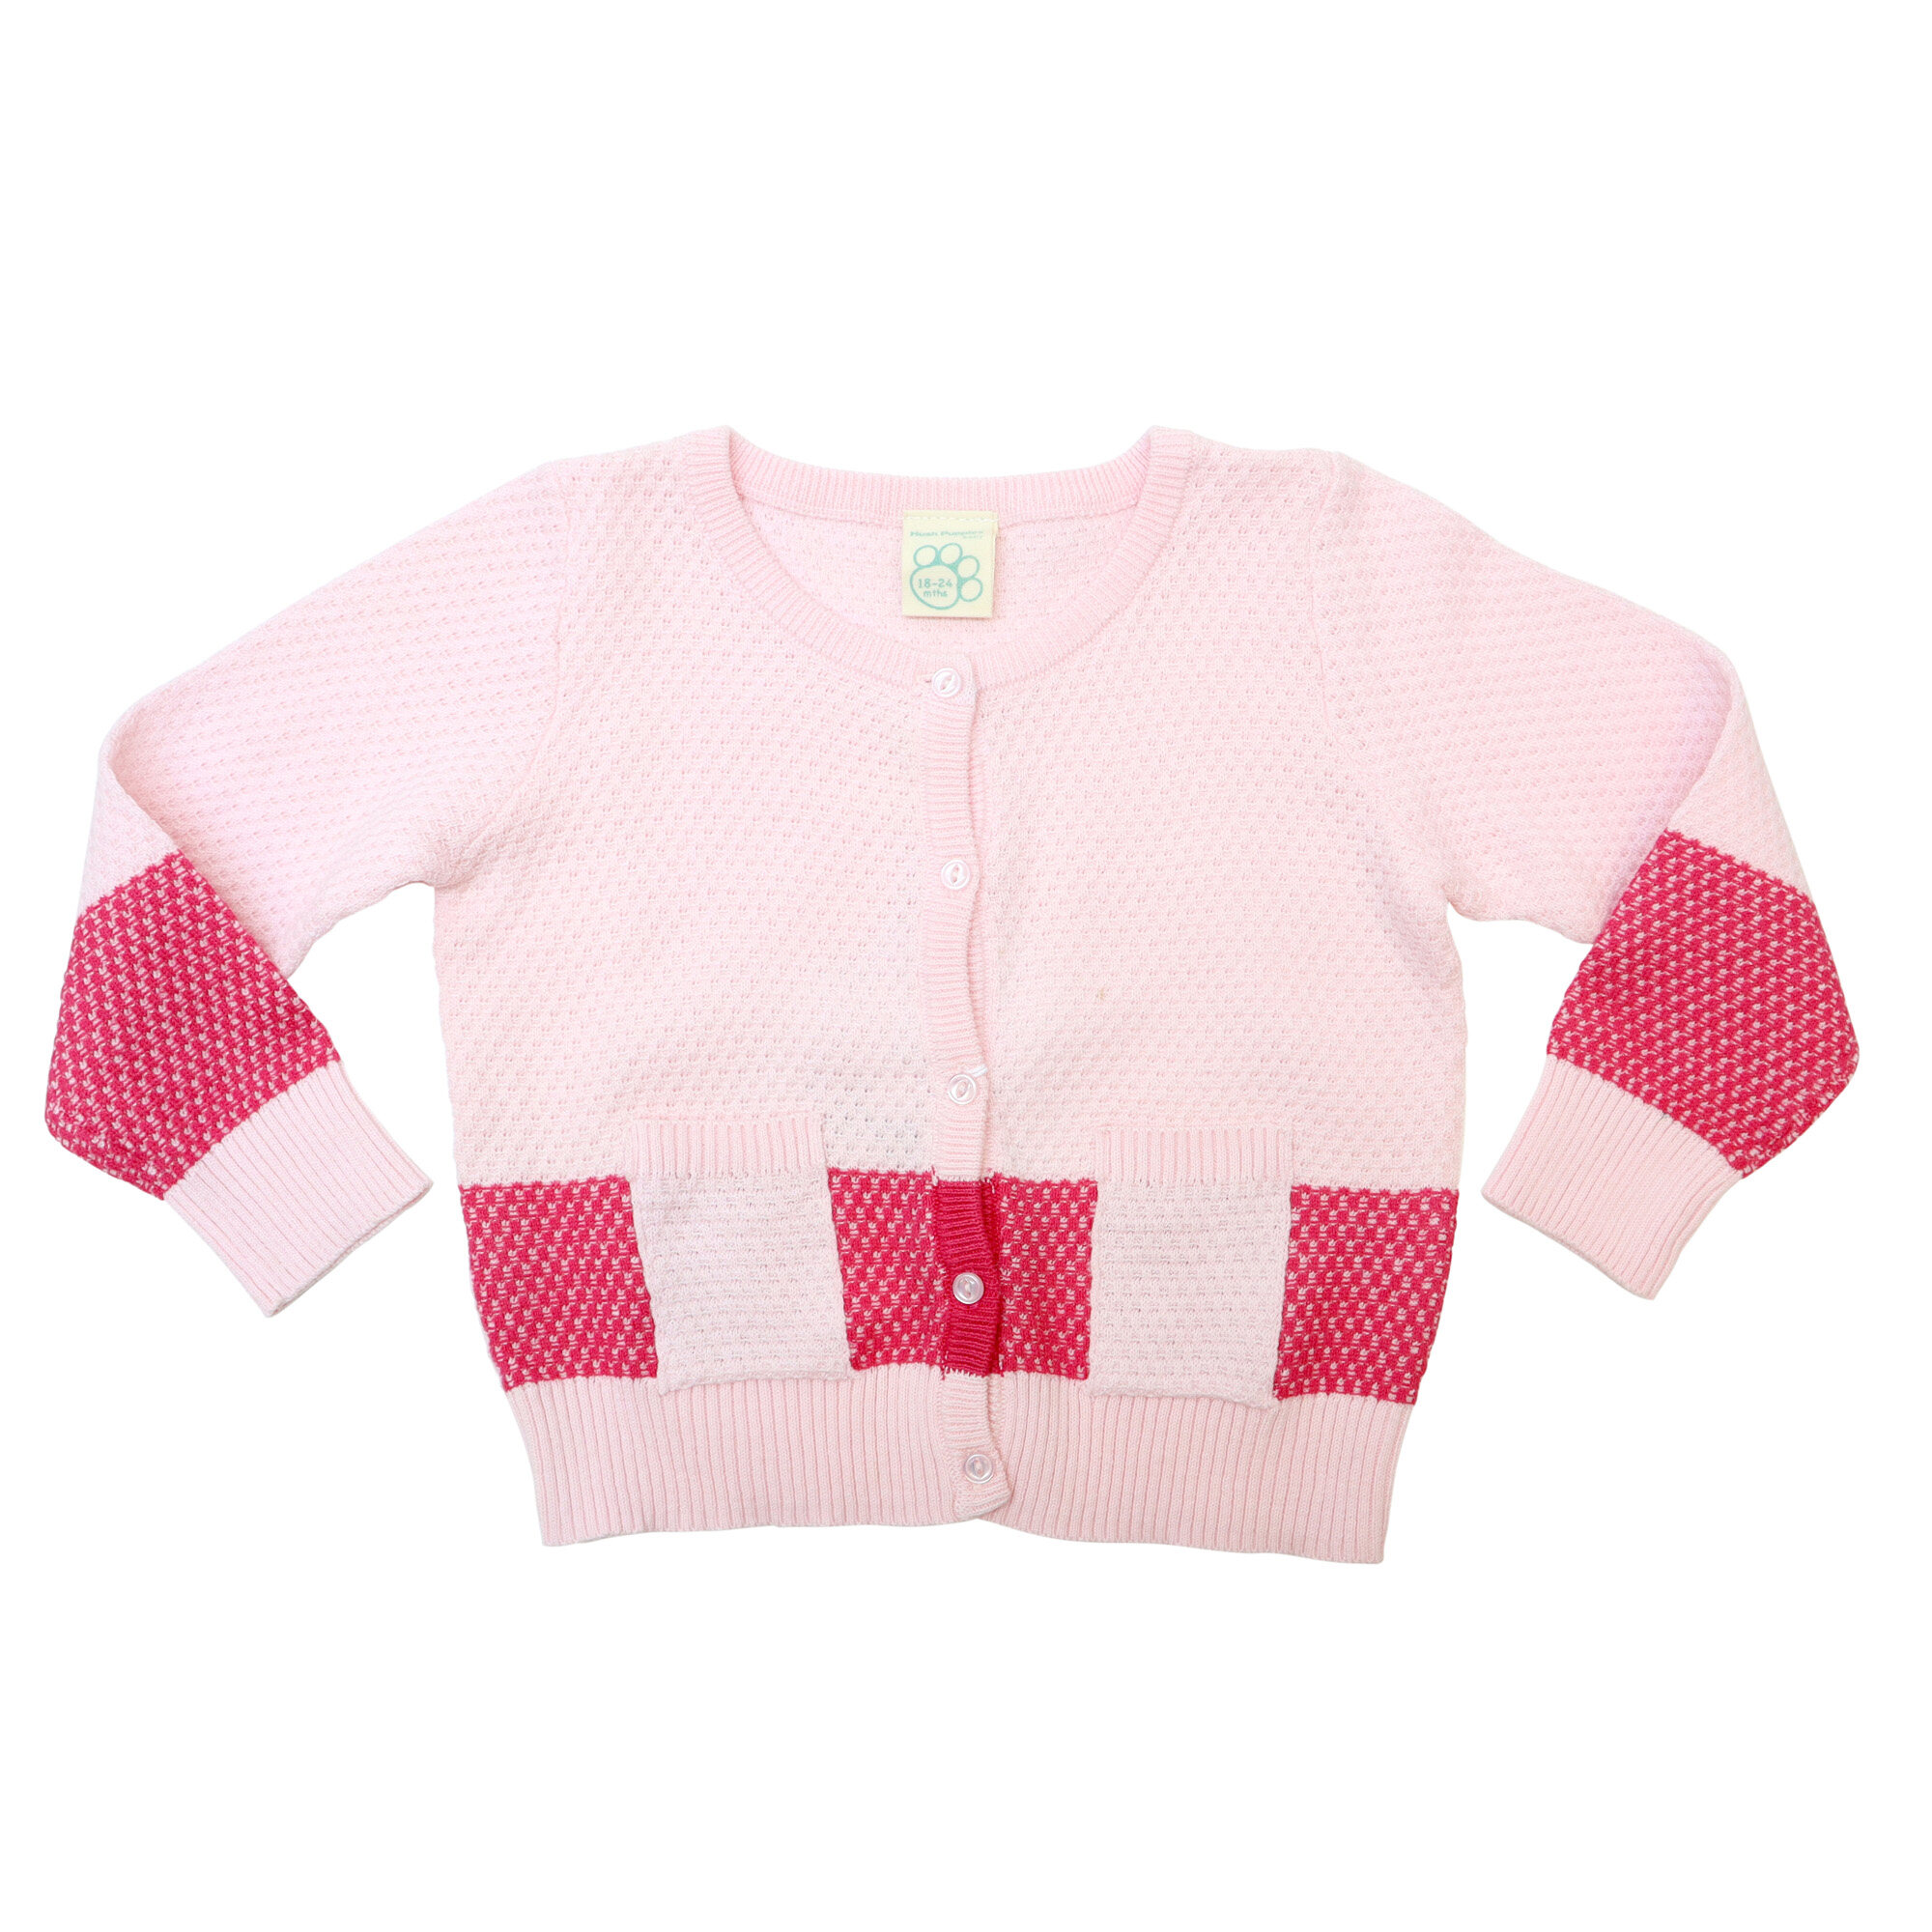 Hush Puppies Baby's Precious Girl Long Sleeve Cardigan  HFO772703